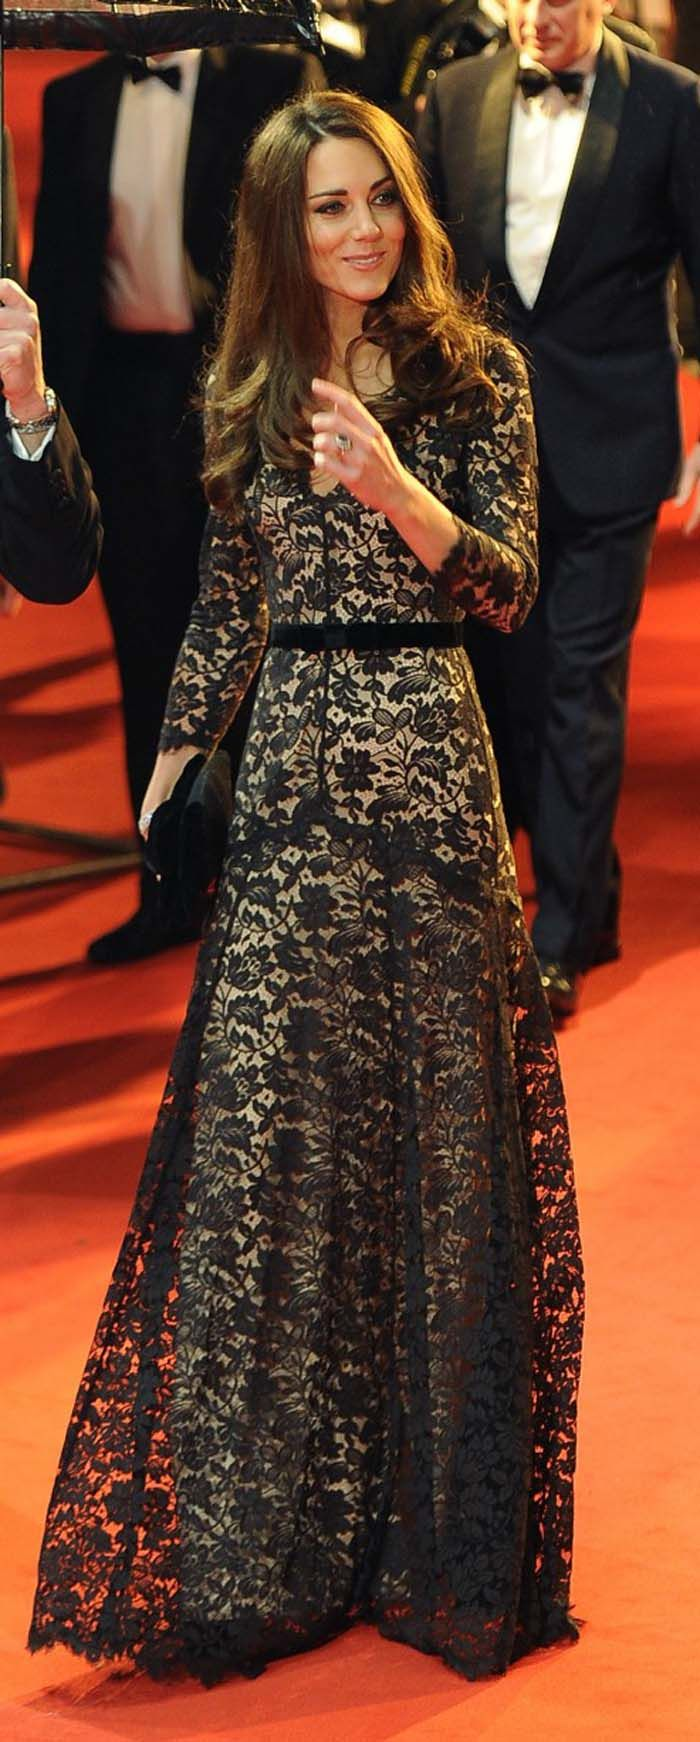 Kate Middleton in Alice Temperley Lace Dress